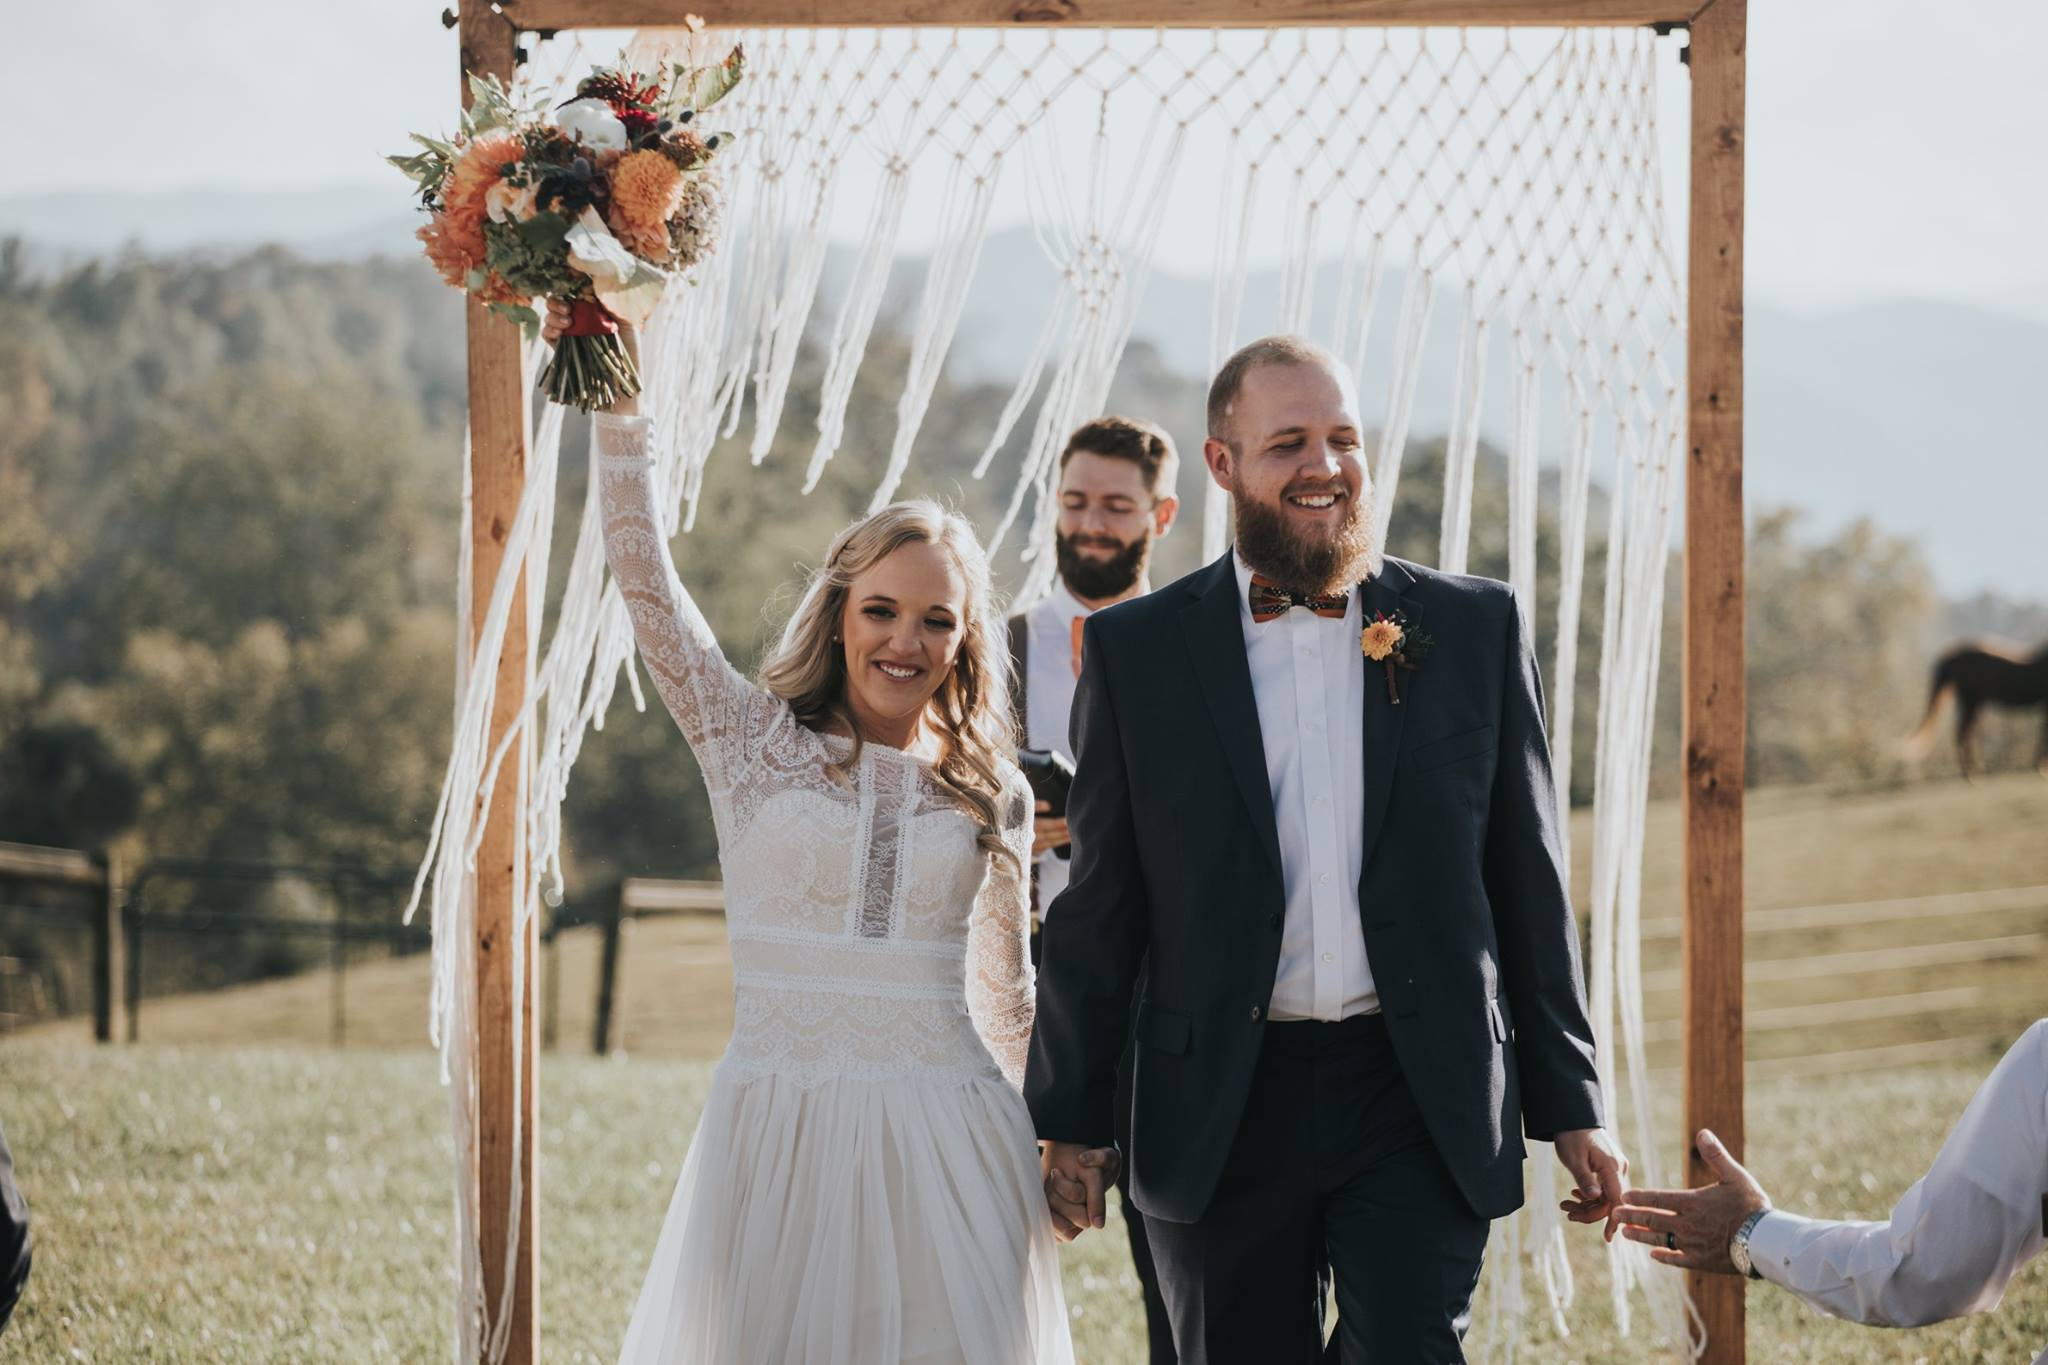 Groom with Real Bride at Boho Festival Wedding Walking Away from Rustic Wedding Arch